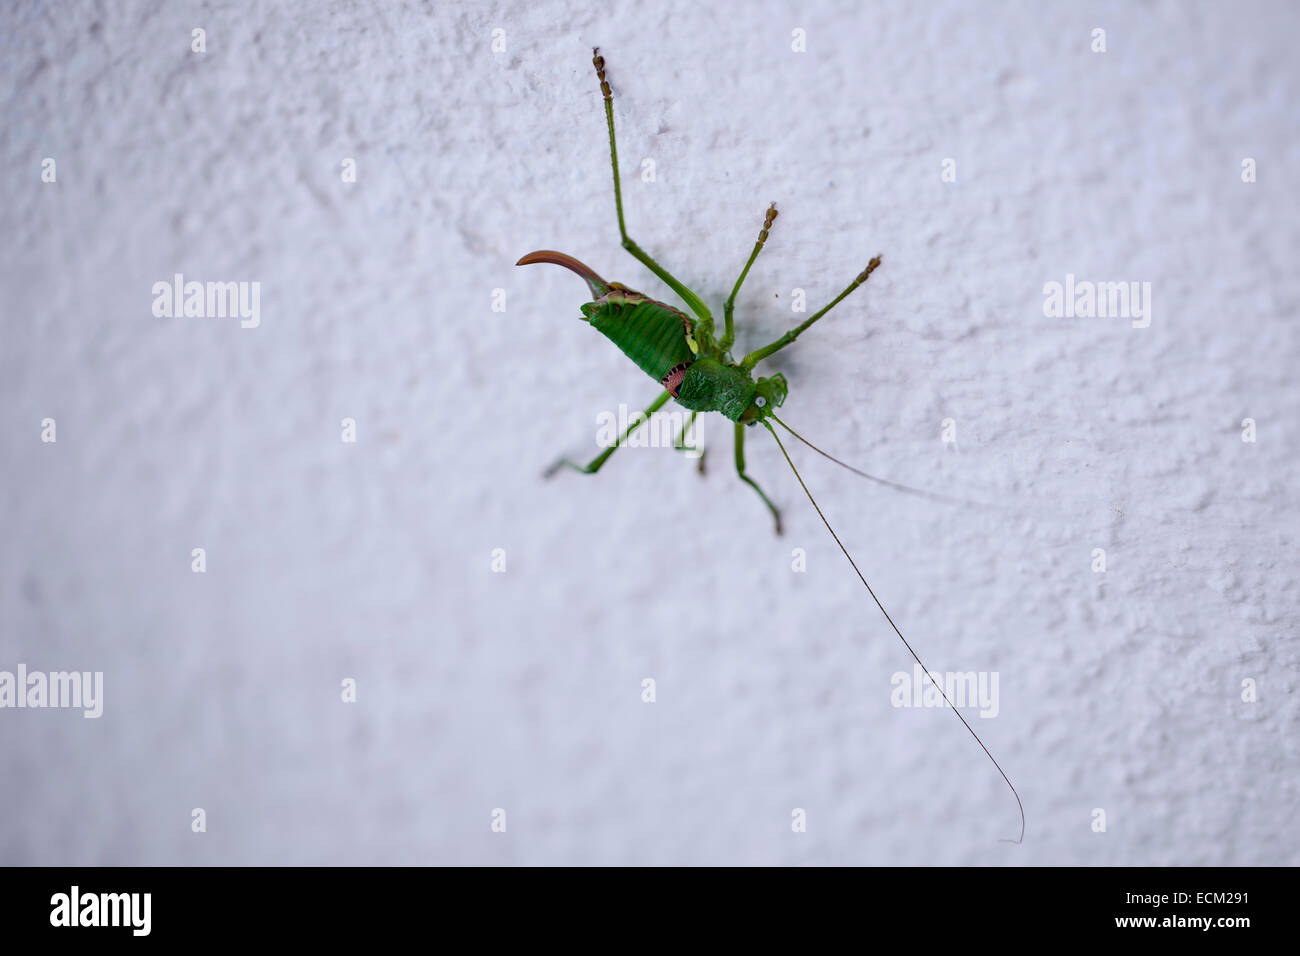 long horned grasshopper in a wall - Stock Image